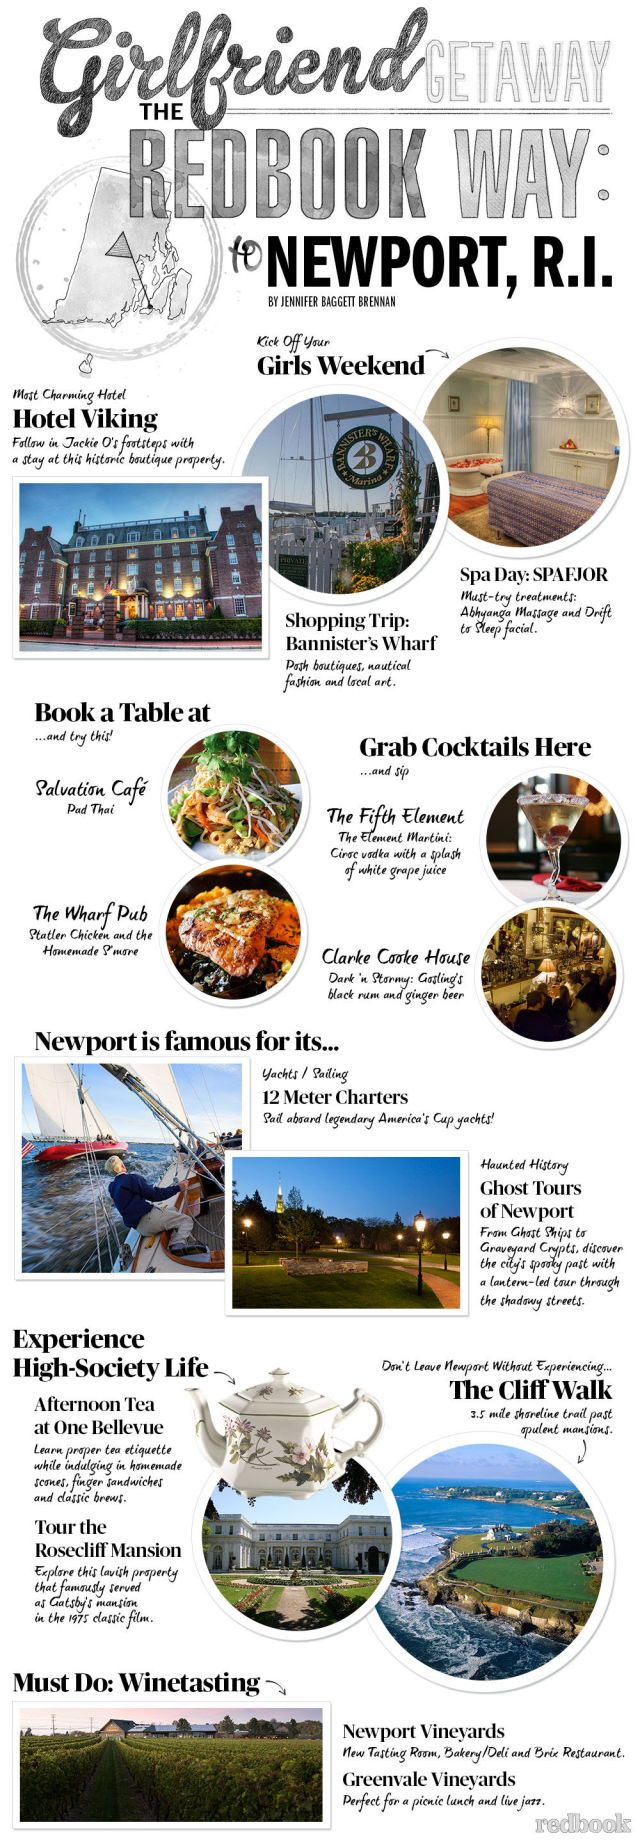 Why Newport is Now a Fun and Low-key Girlfriend Getaway Destination